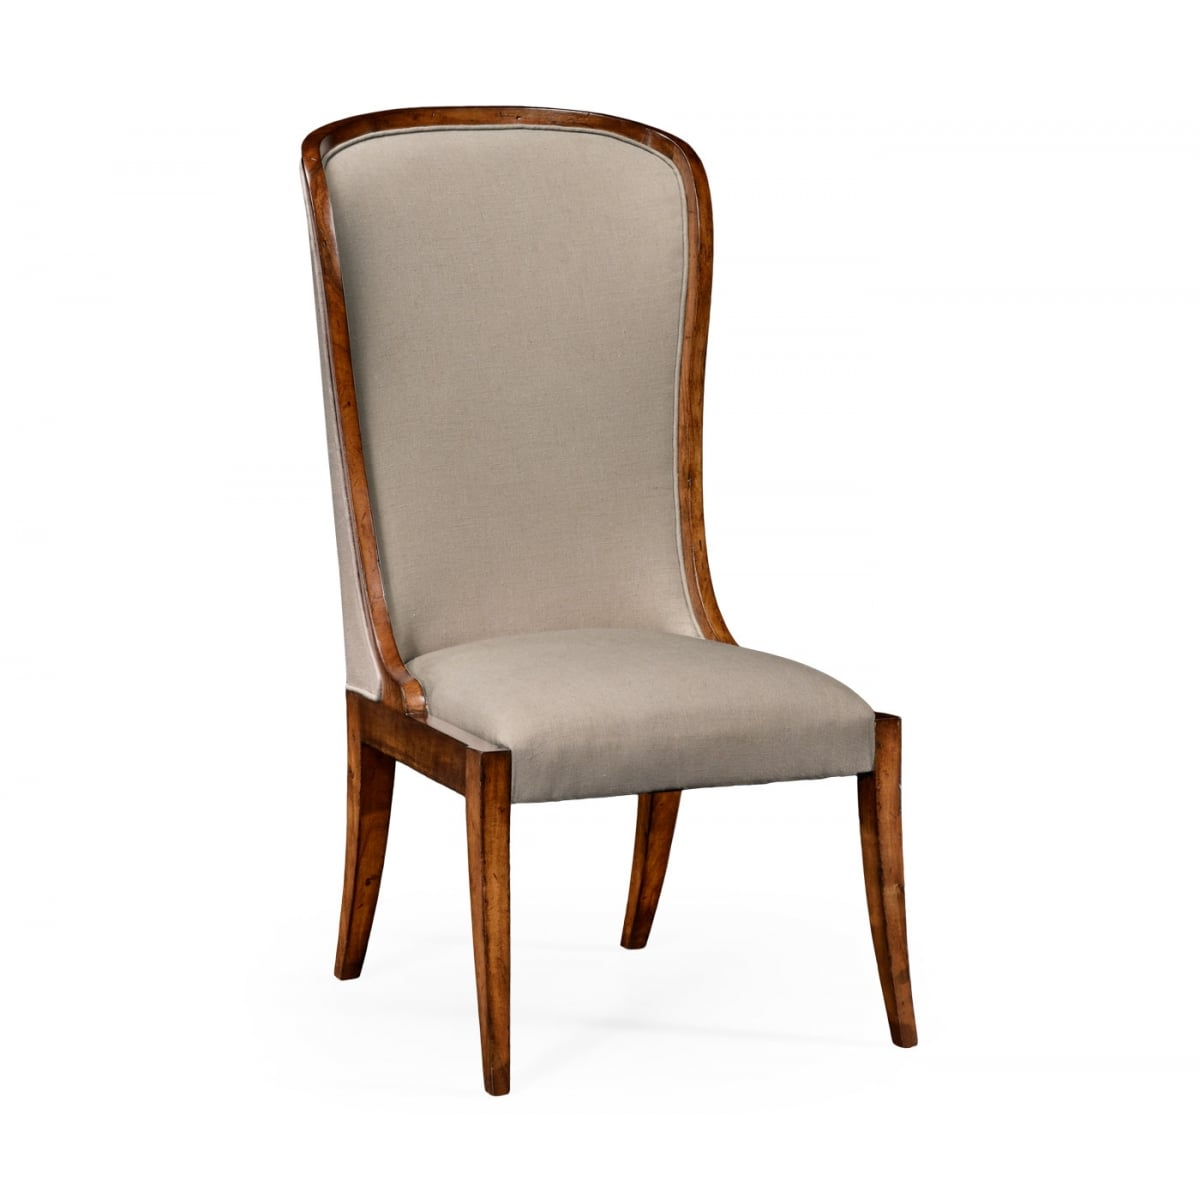 high back upholstered dining chair swanky interiors. Black Bedroom Furniture Sets. Home Design Ideas